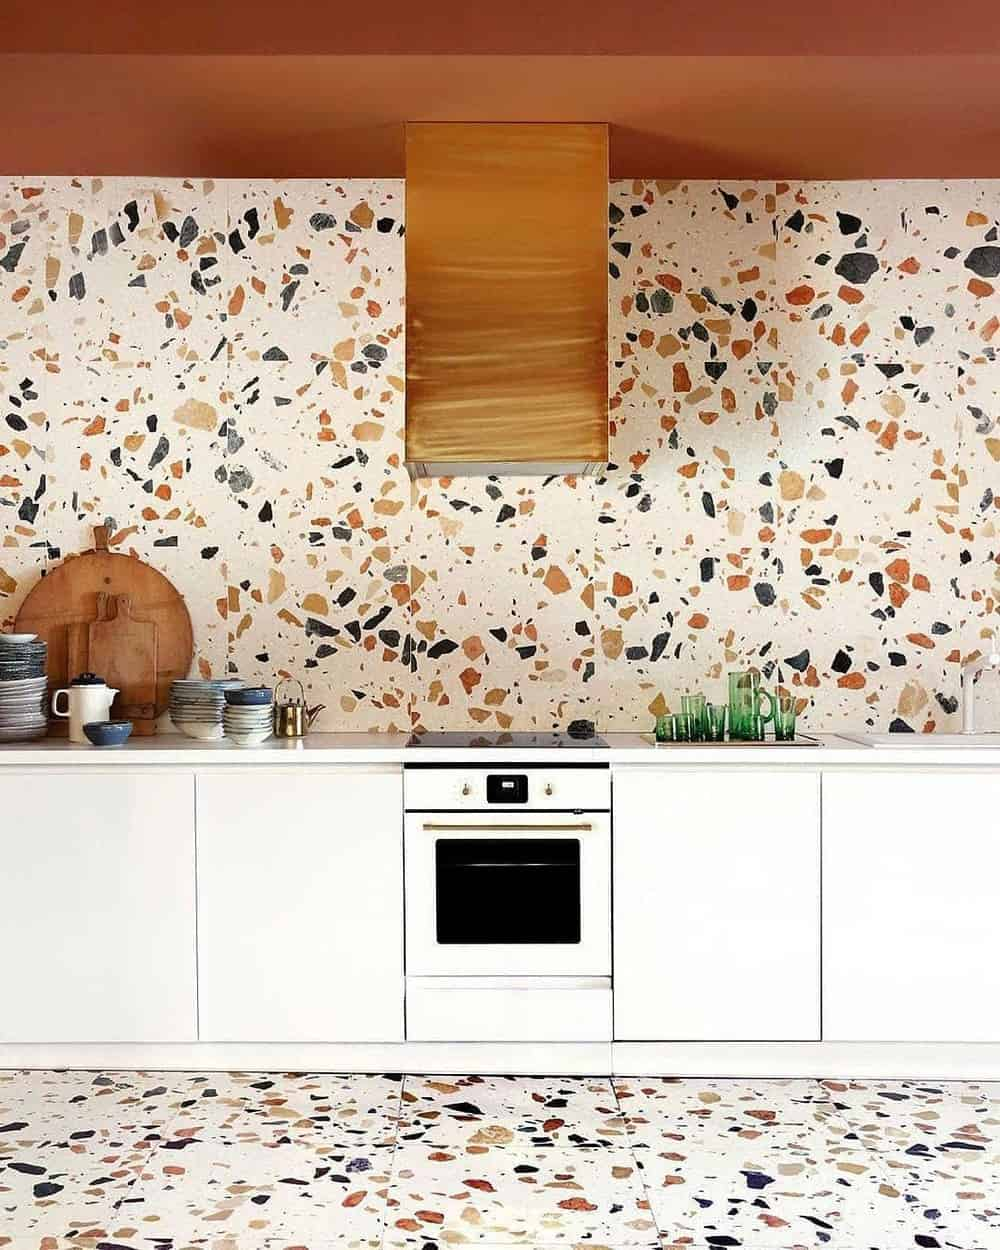 Tile Ideas That You Can Use For Your Home Decor - Terrazzo